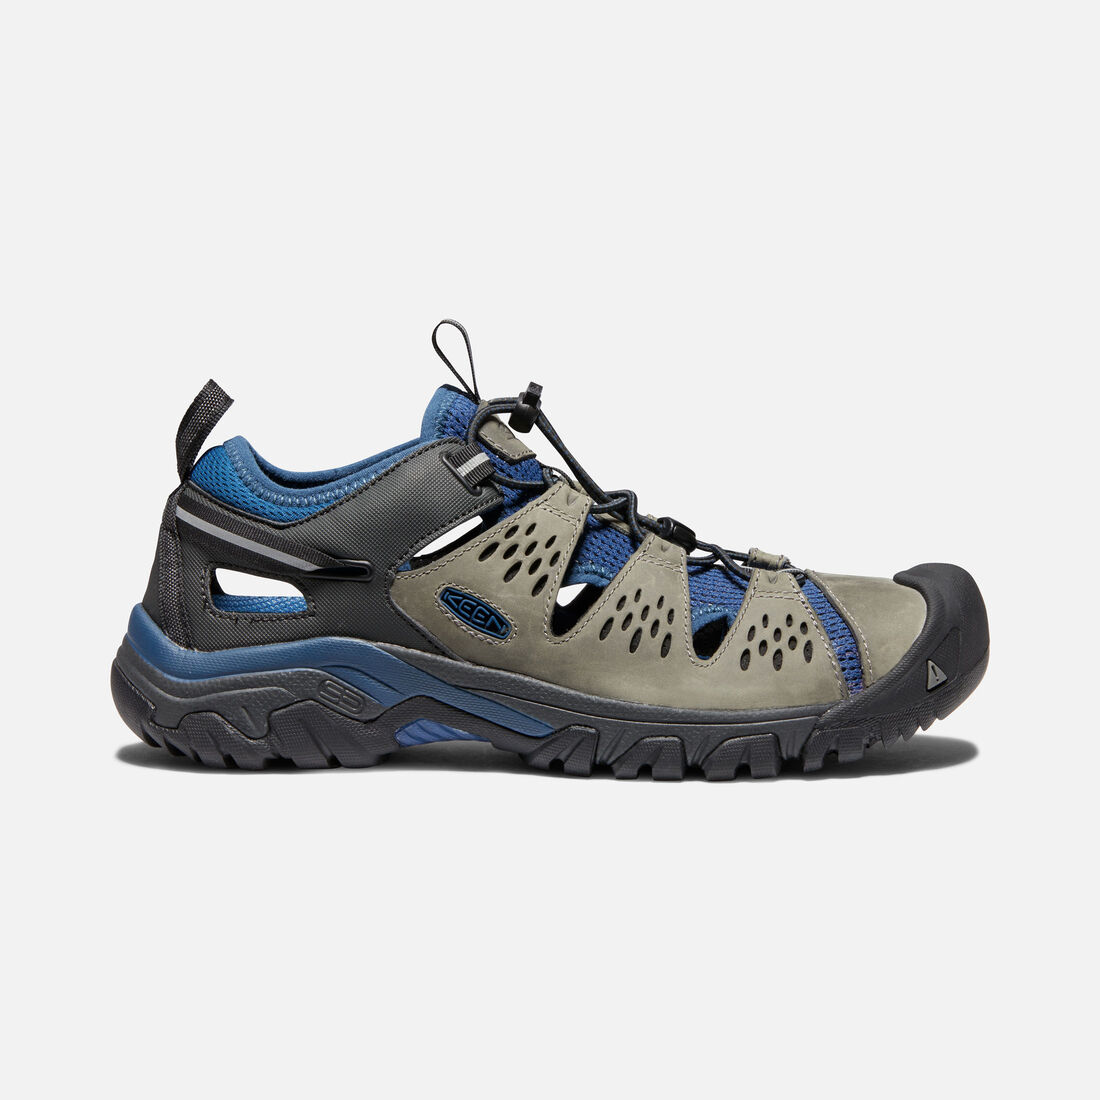 Men's ARROYO III in EMPIRE/BLUE OPAL - large view.